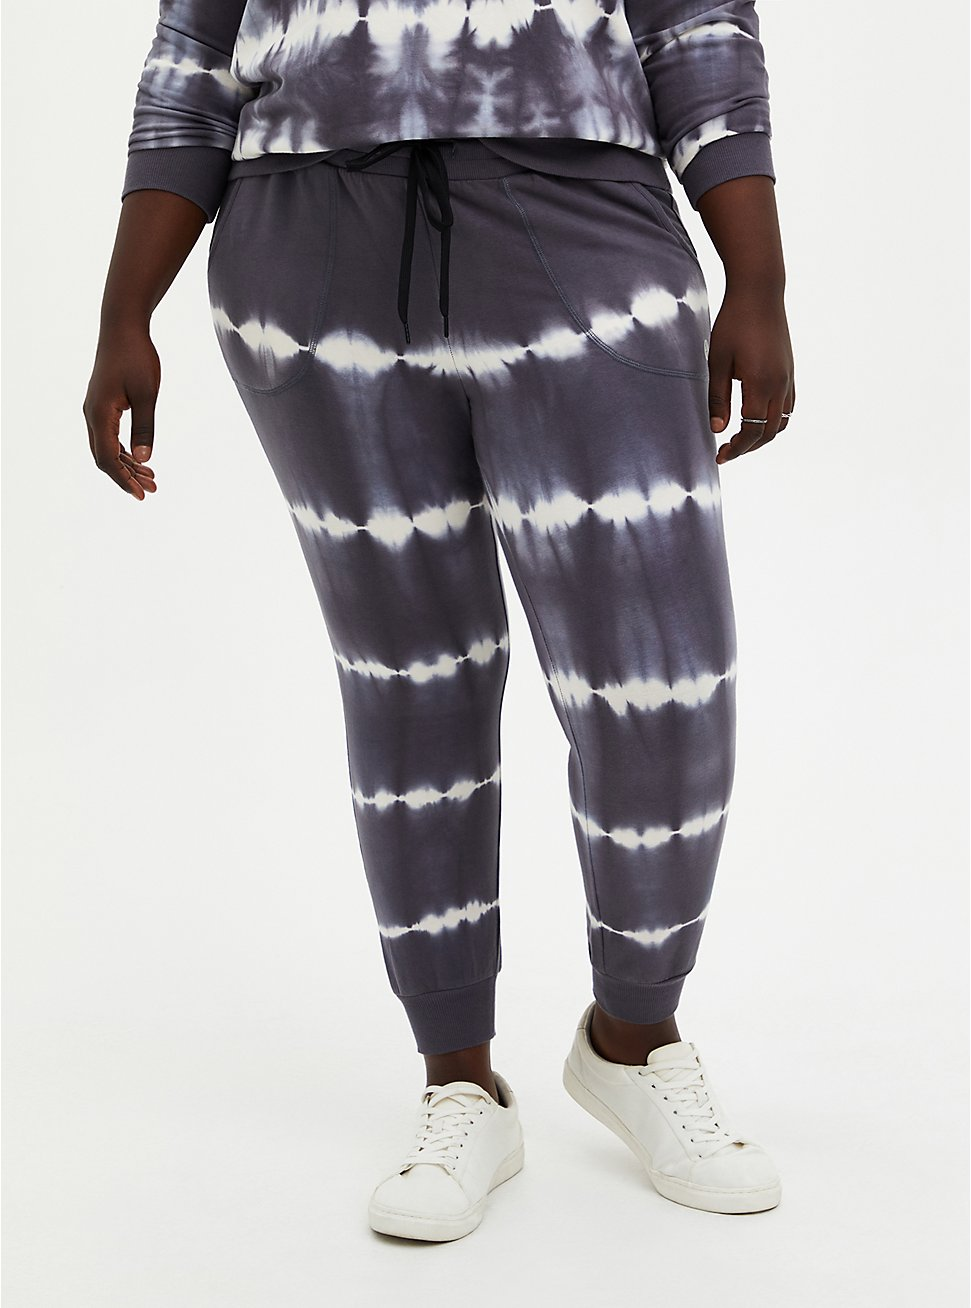 Classic Fit Jogger - Terry Grey & White, TIE DYE, hi-res